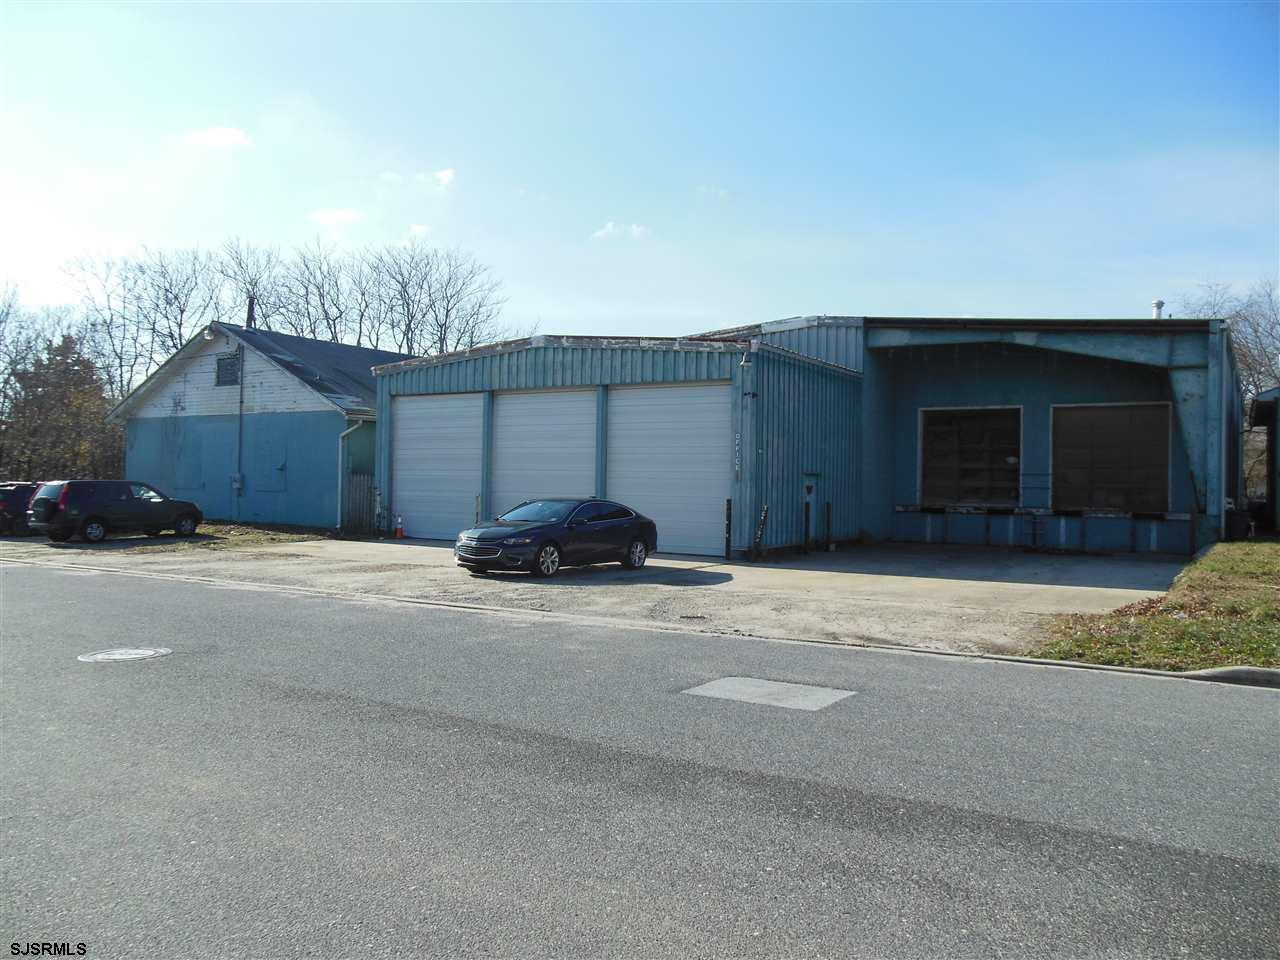 Great Opportunity to own approx. 9000 sq ft steel building with solid concrete floor, well insulated, natural gas heat, public utilities & loading docks. Clean wide open space , has an office area, break room and a bathroom. Also listed for rent , see mls # 515036... Call listing agent for details... BUYER RECENTLY HAD THE ACCESSMENT LOWERED FROM $288,800 DOWN TO $220,000 . HAS NOT RECEIVED NEW TAX BILL , BUT TAXES WILL BE SIGNIFICANTLY LOWER THEN LISTED CURRENTLY